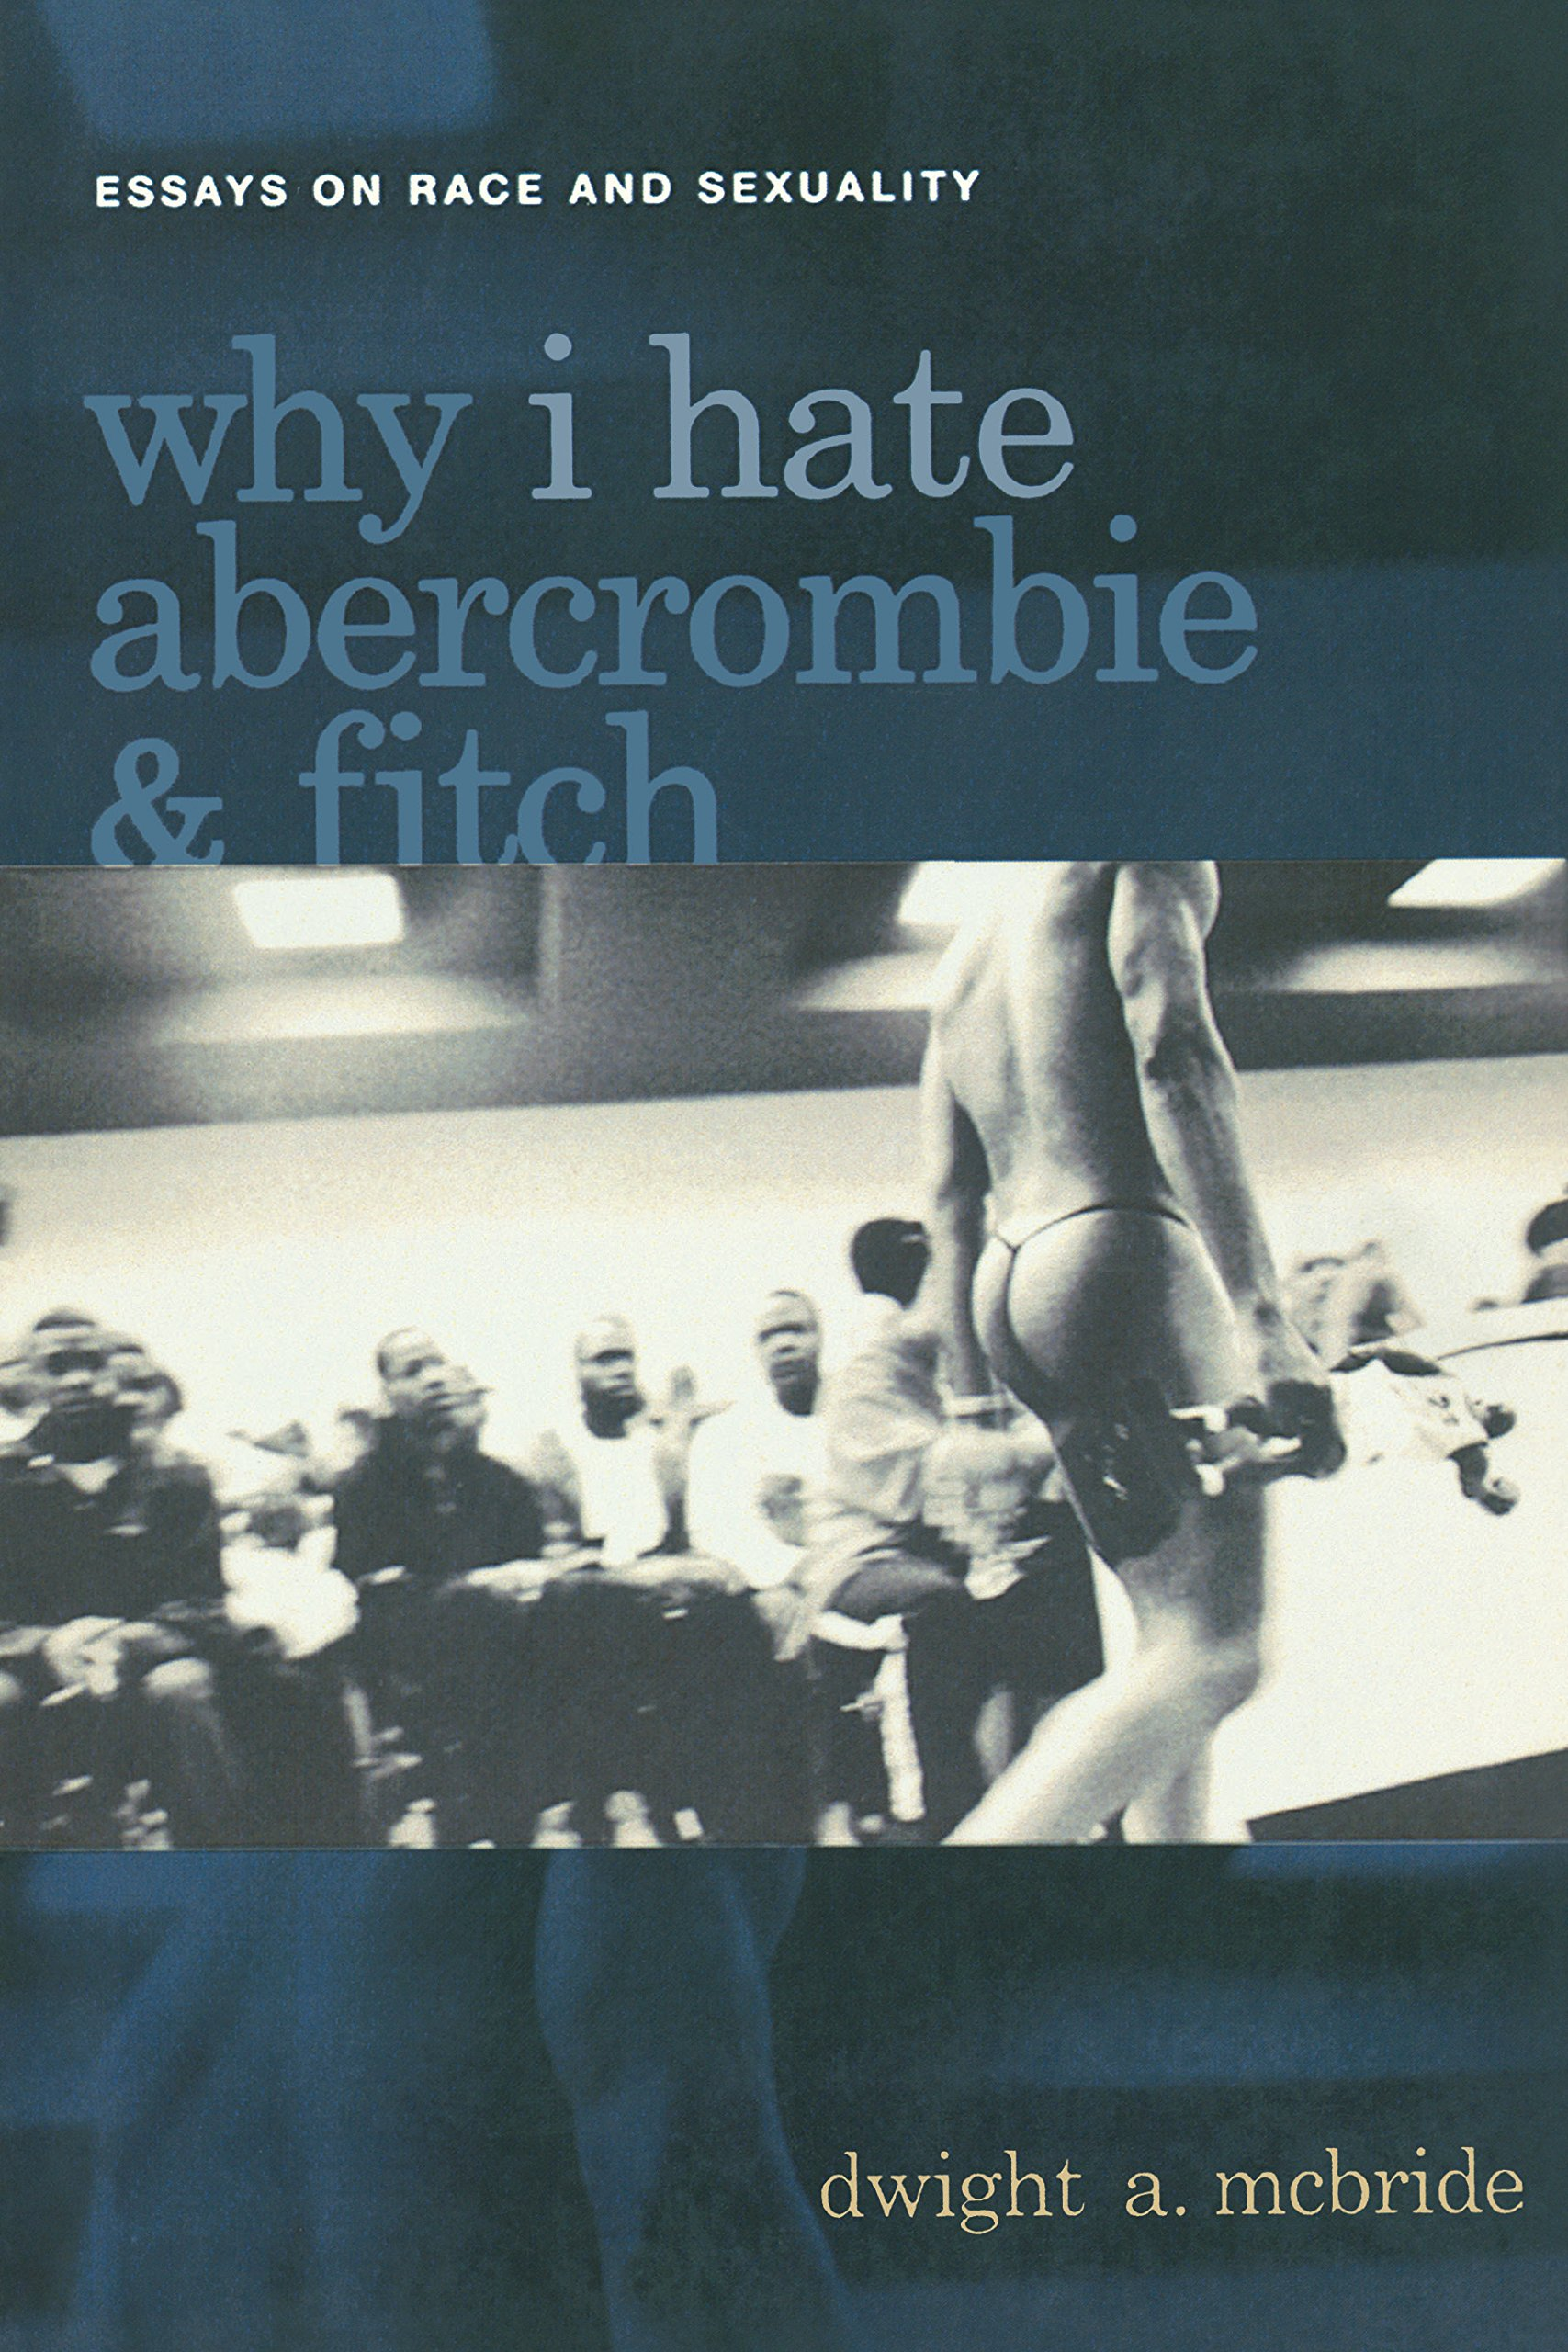 why i hate abercrombie fitch essays on race and sexuality why i hate abercrombie fitch essays on race and sexuality sexual cultures amazon co uk dwight mcbride 9780814756867 books